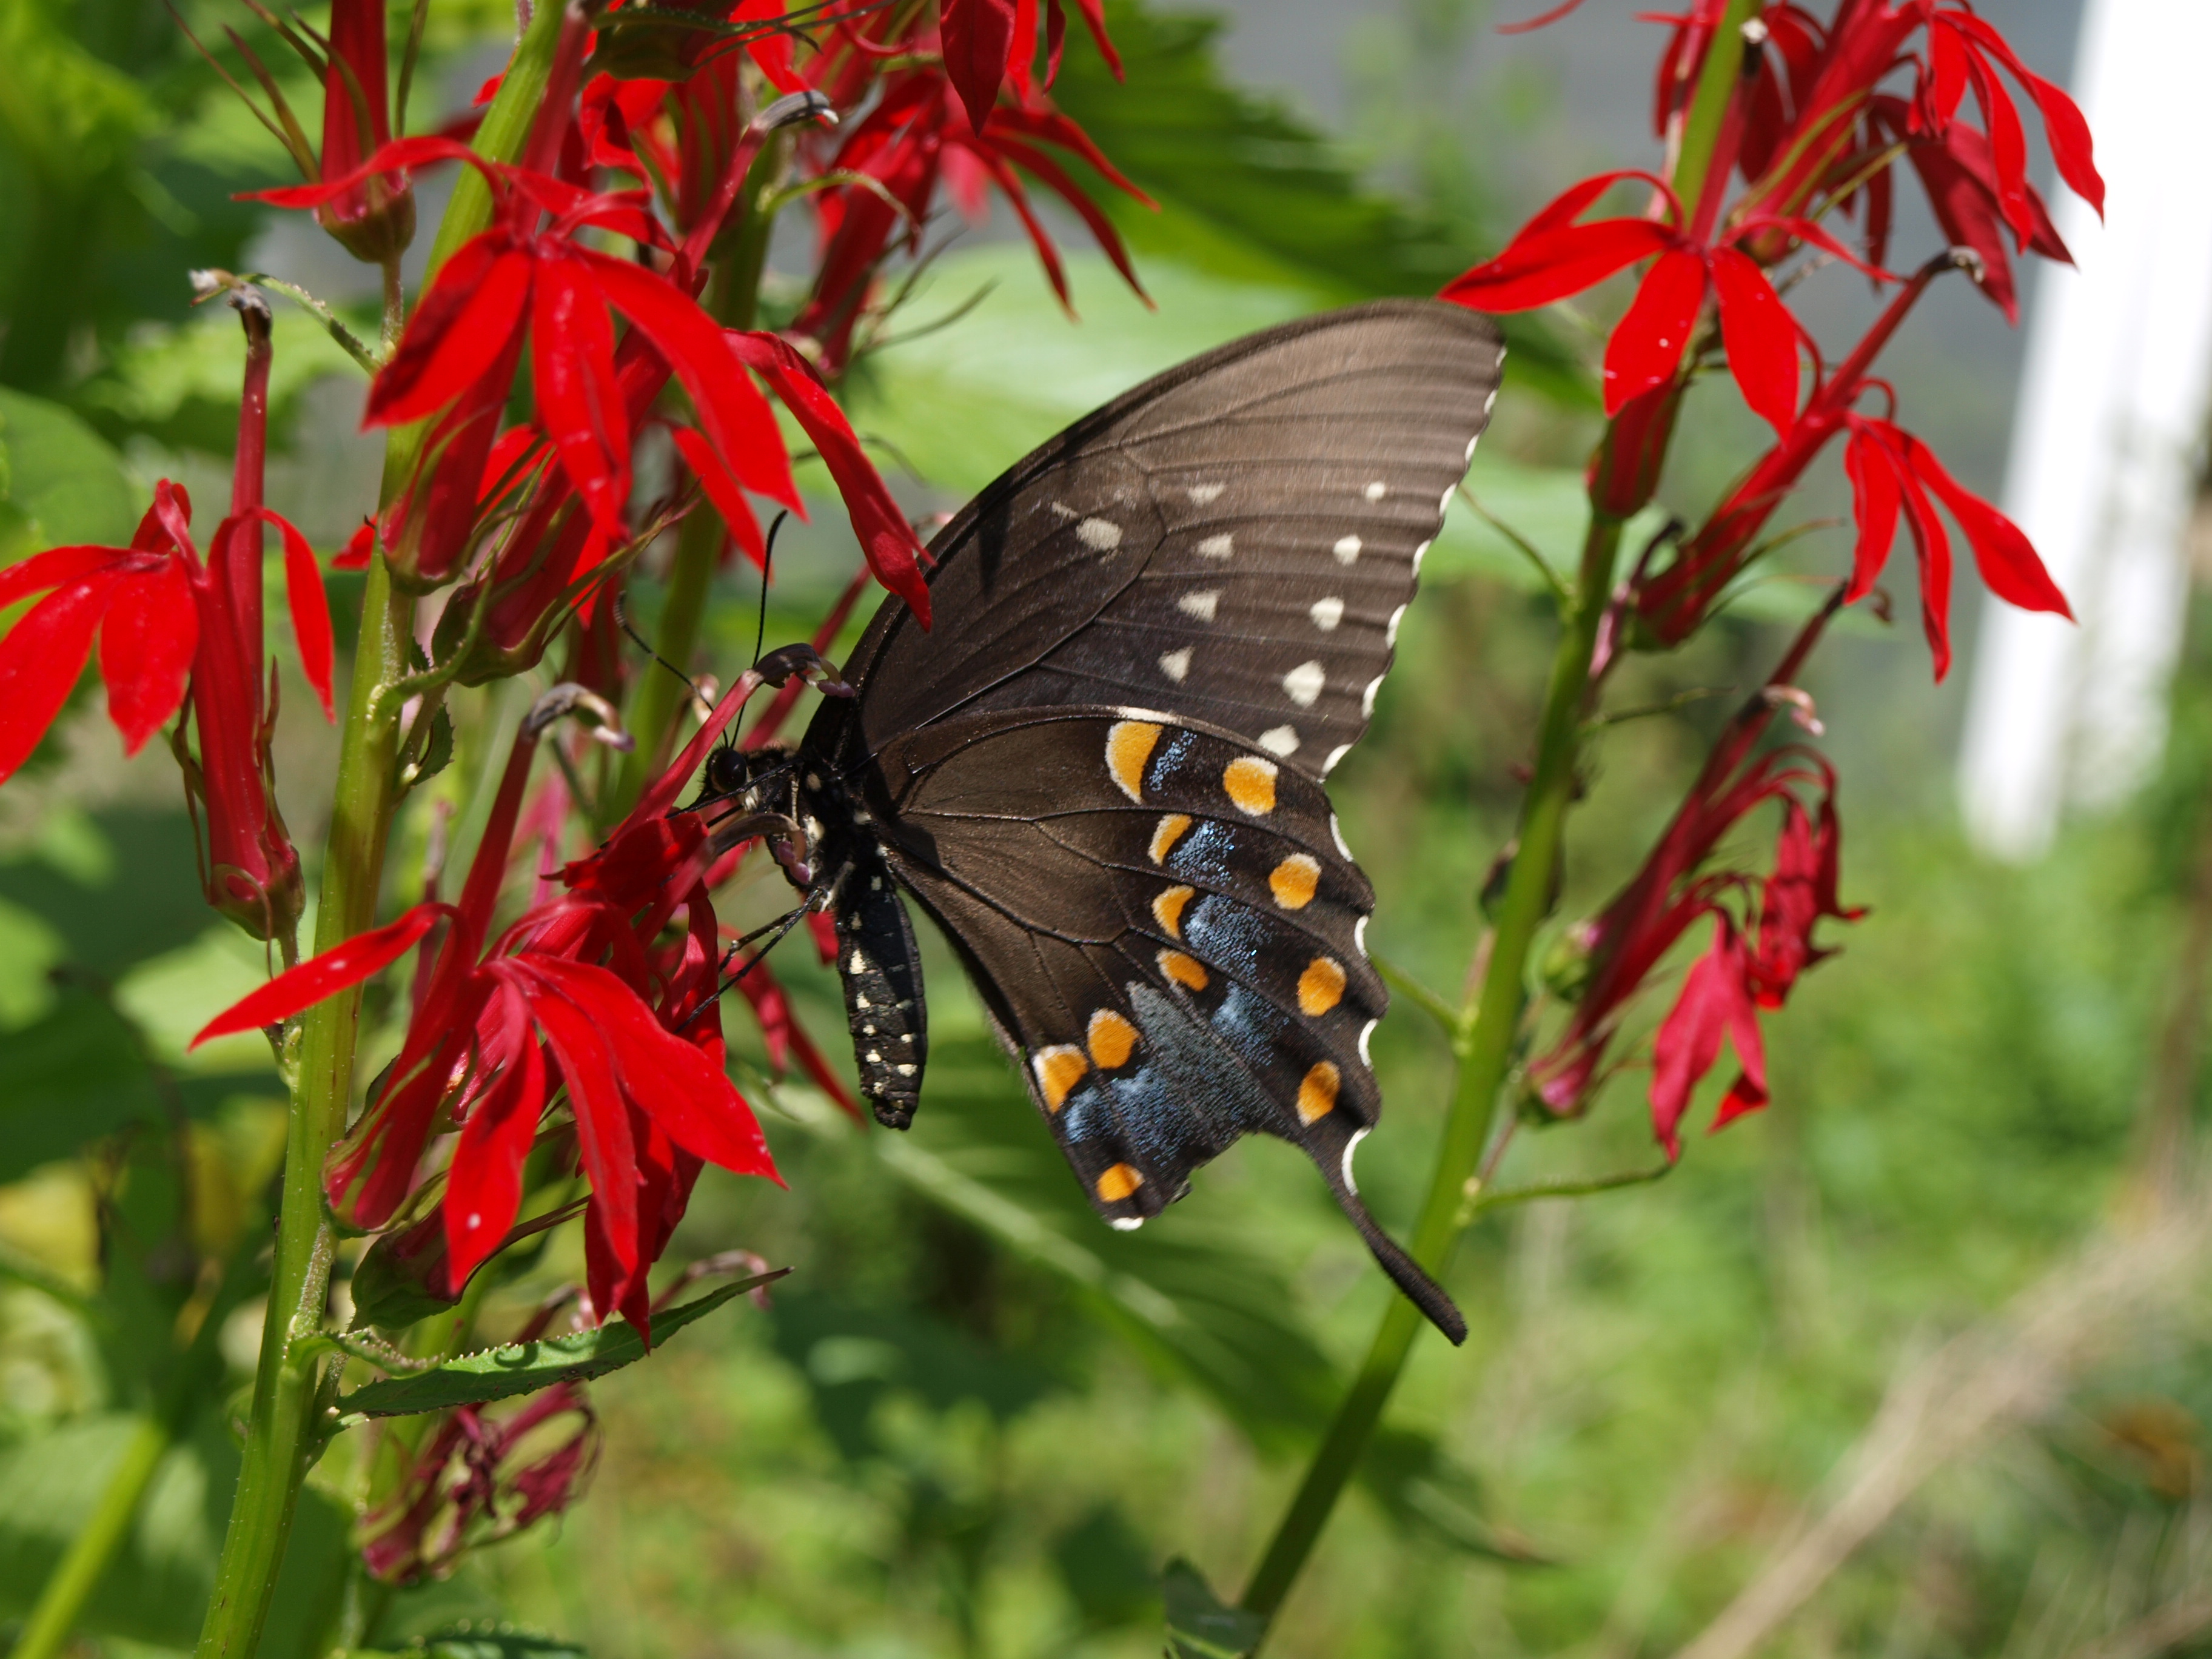 Spicebush Swallowtail nectaring on Cardinalflower